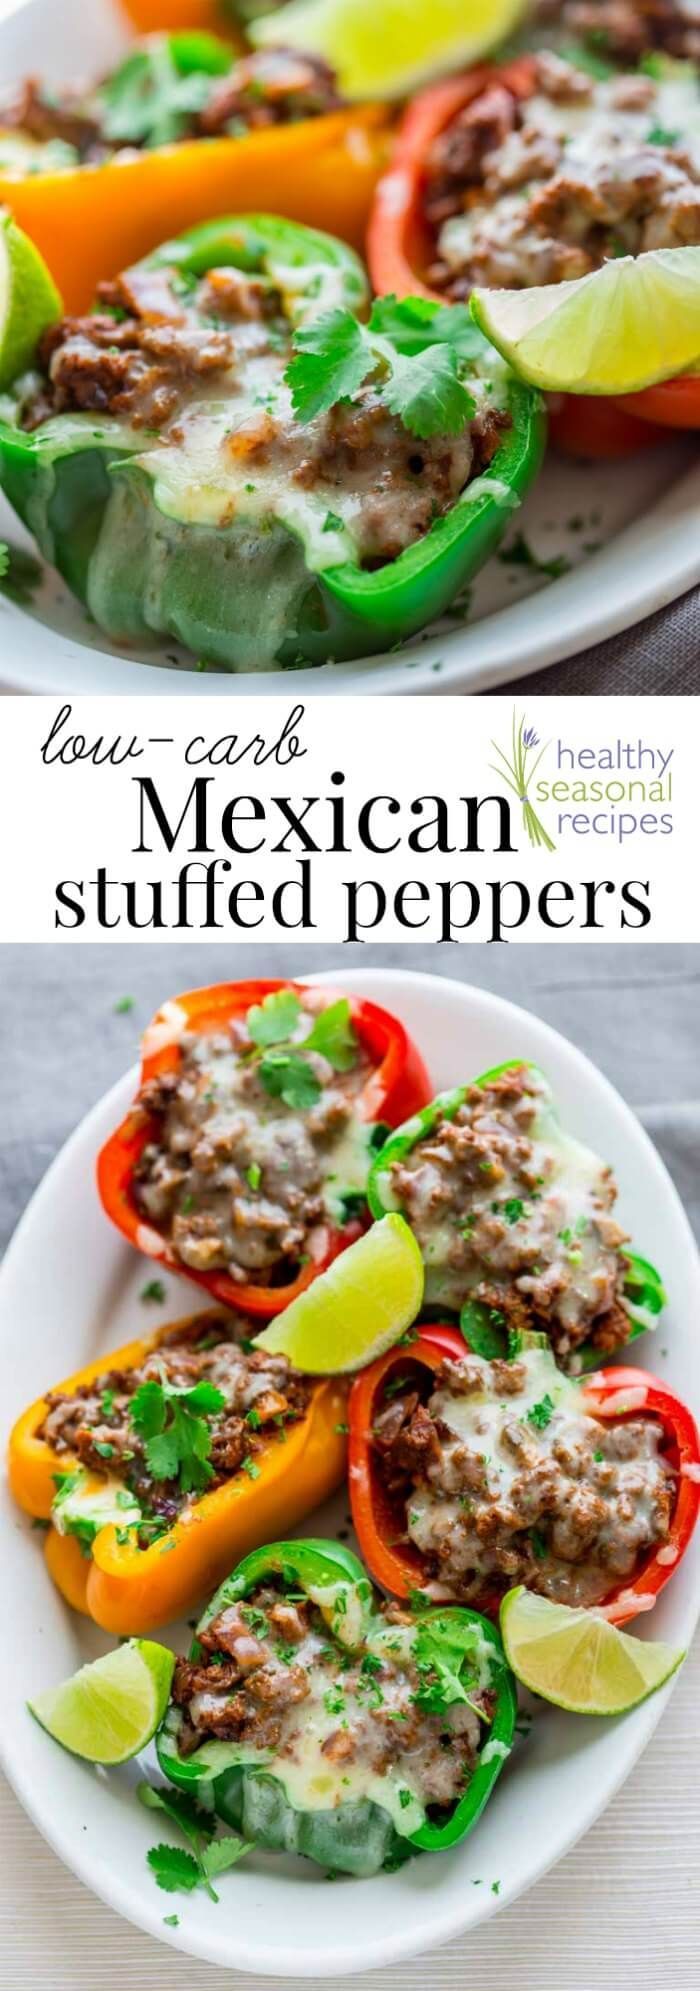 Low Carb Mexican Stuffed Peppers Recipe Mexican Food Recipes Healthy Recipes Recipes